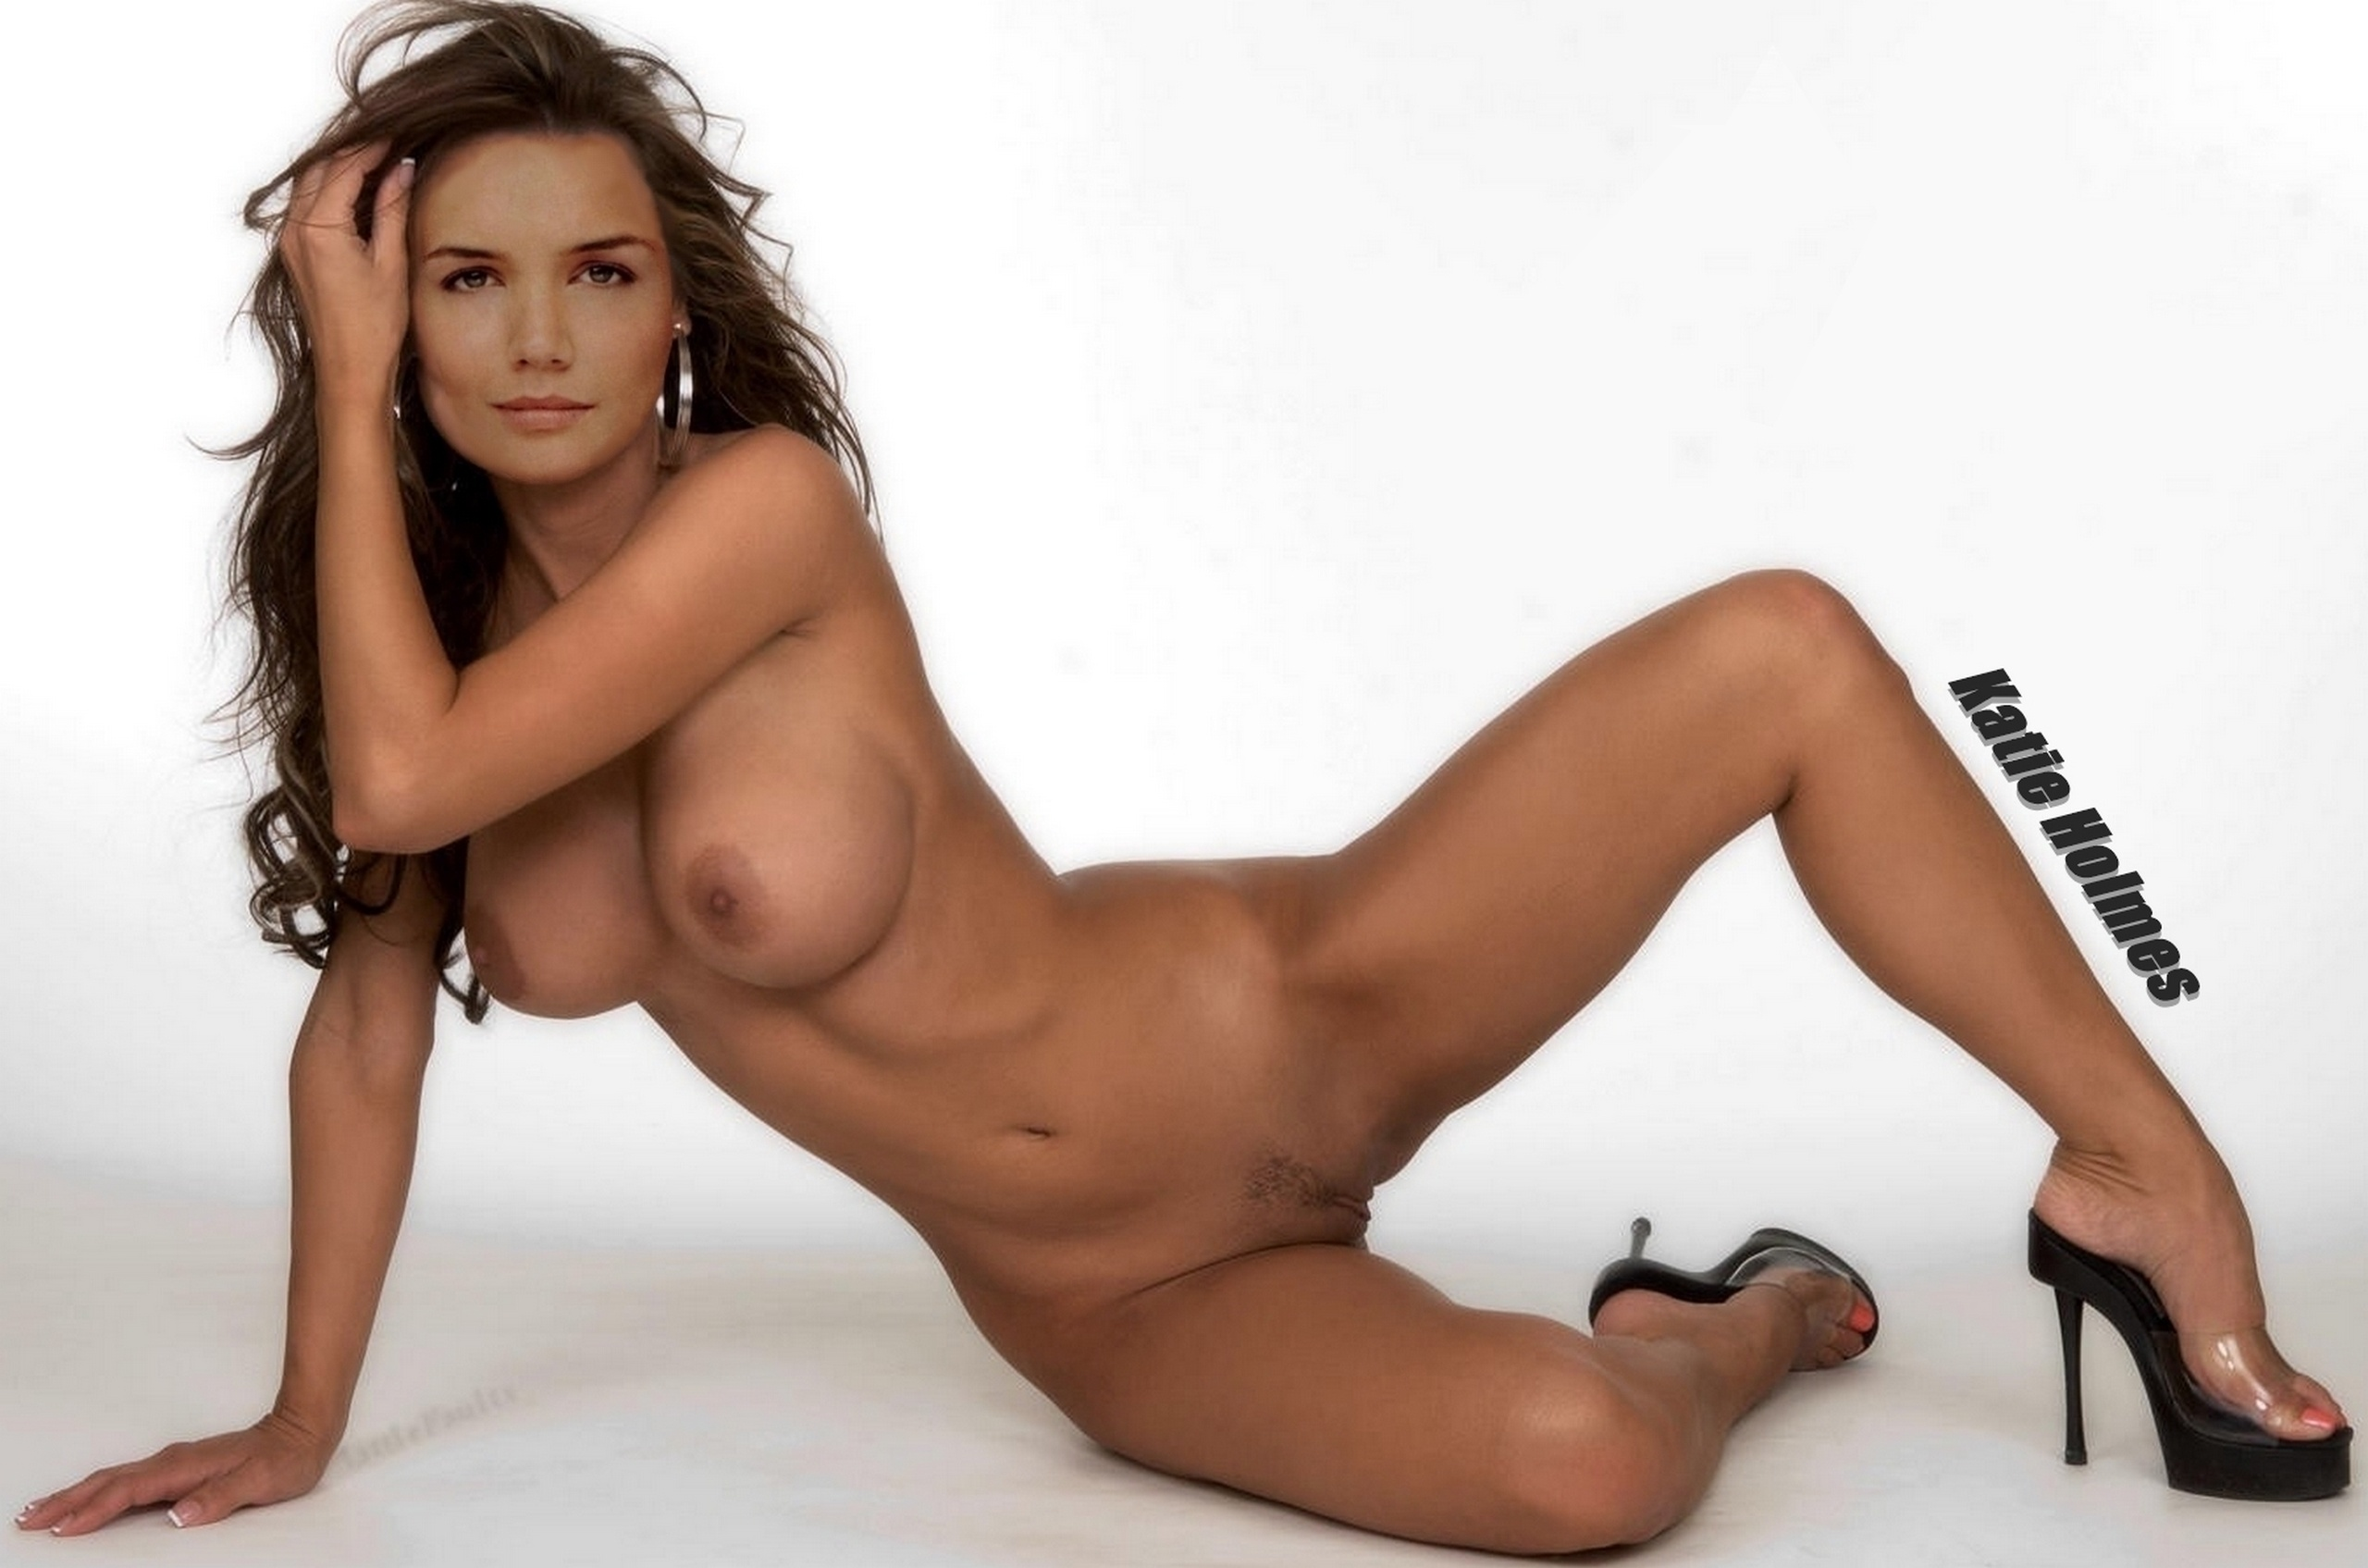 Porn katie holmes naked